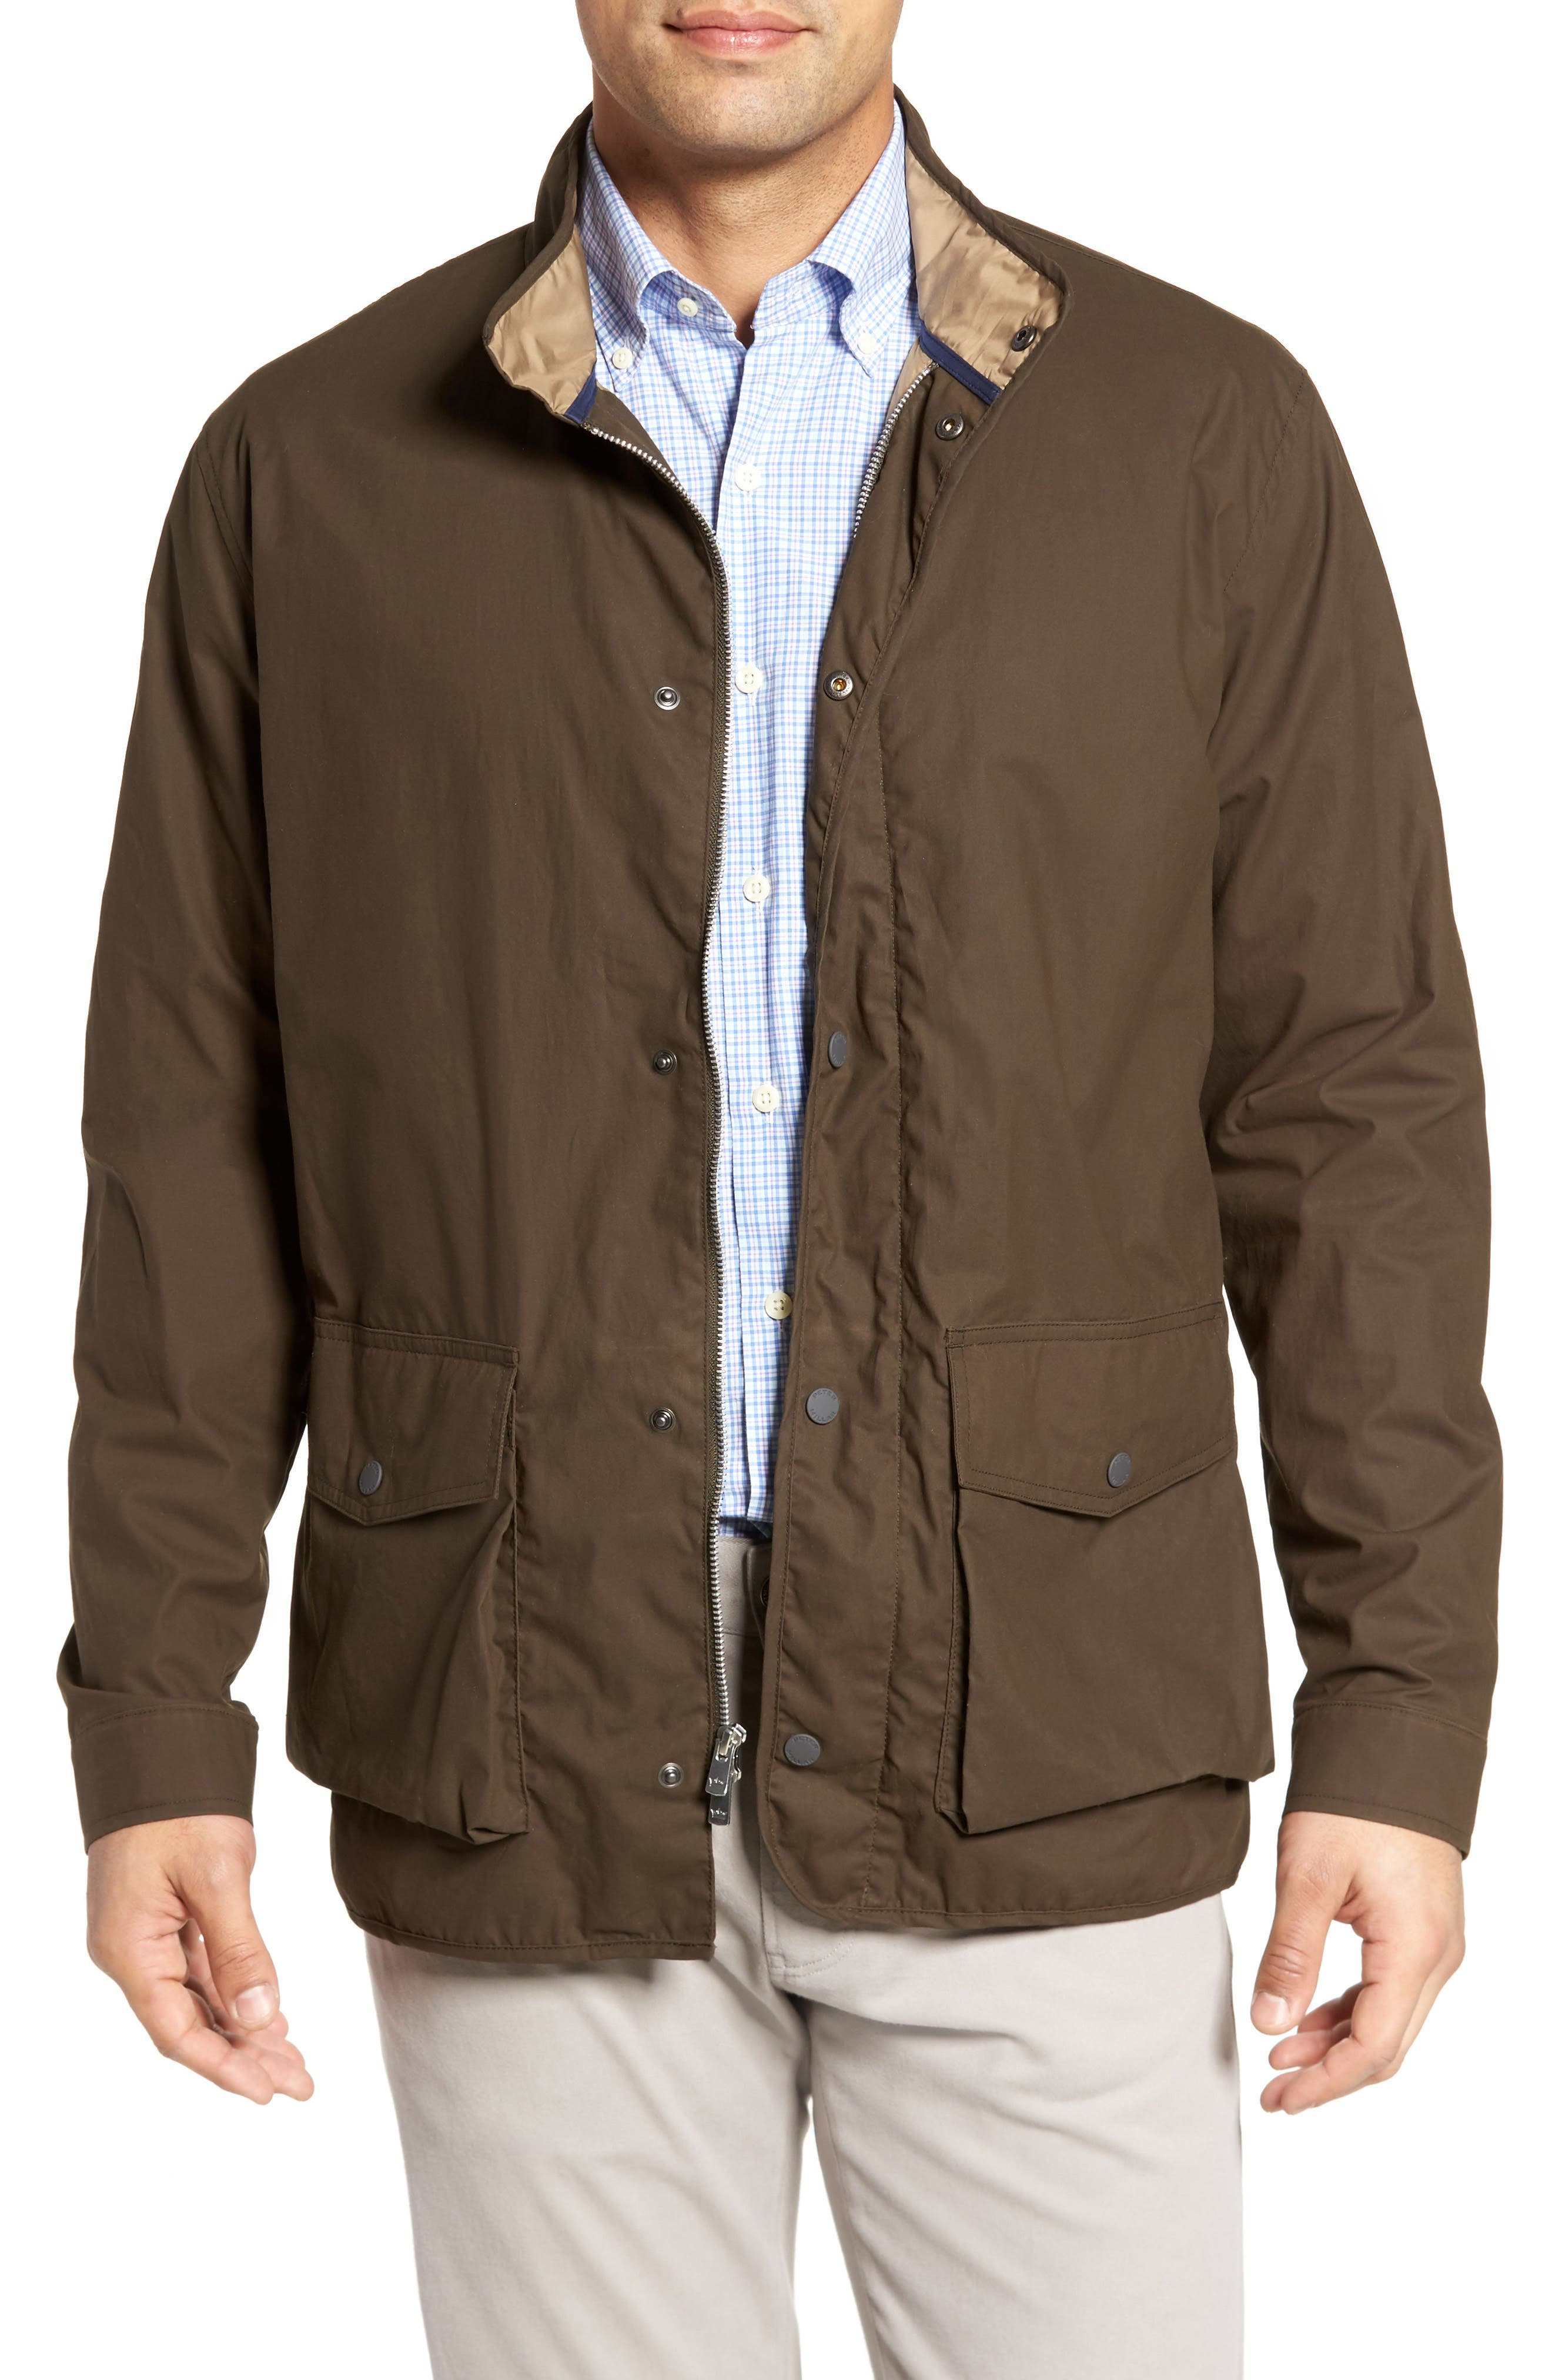 Harrison Wine Country Field Jacket,                         Main,                         color, 391